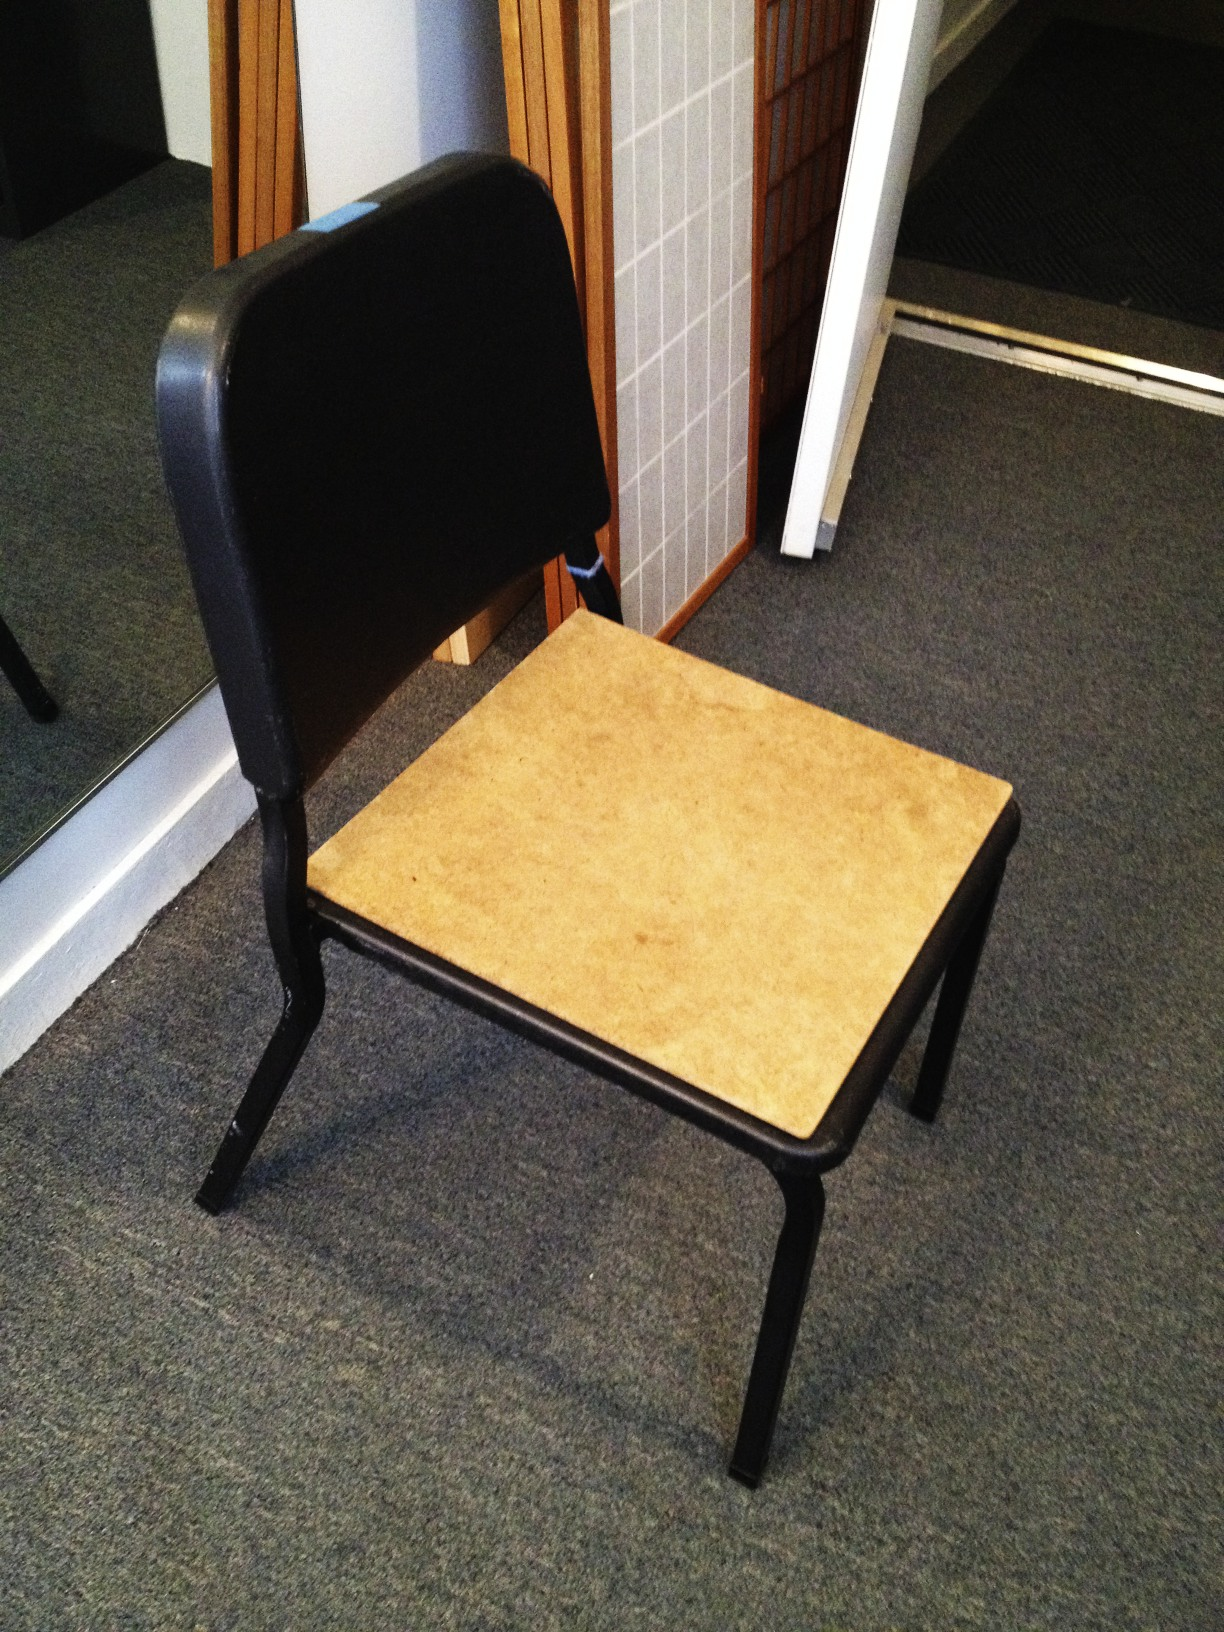 Blue tape on chair signifies that it is a short chair!